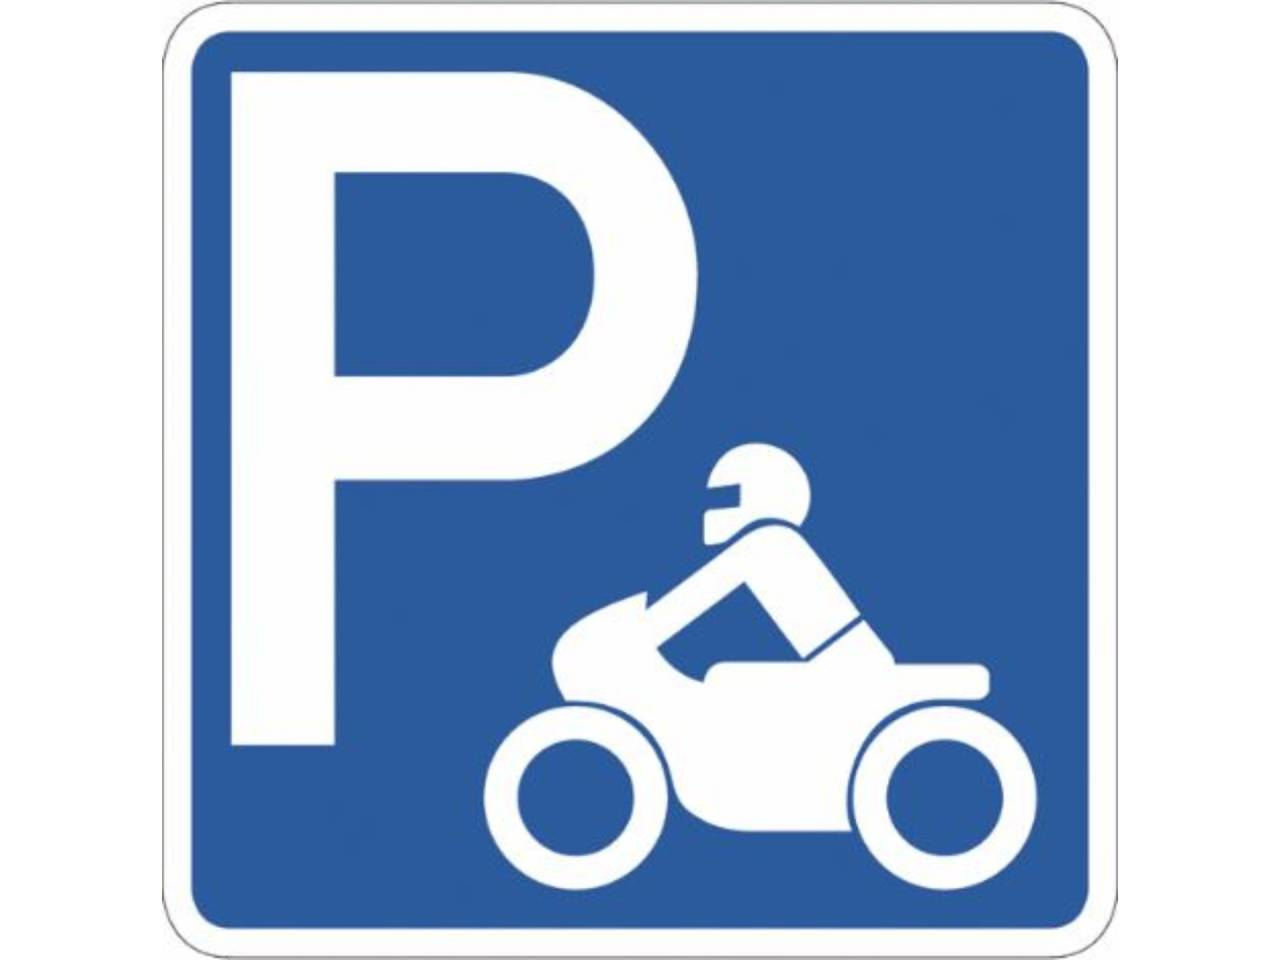 Plaza de parking para moto